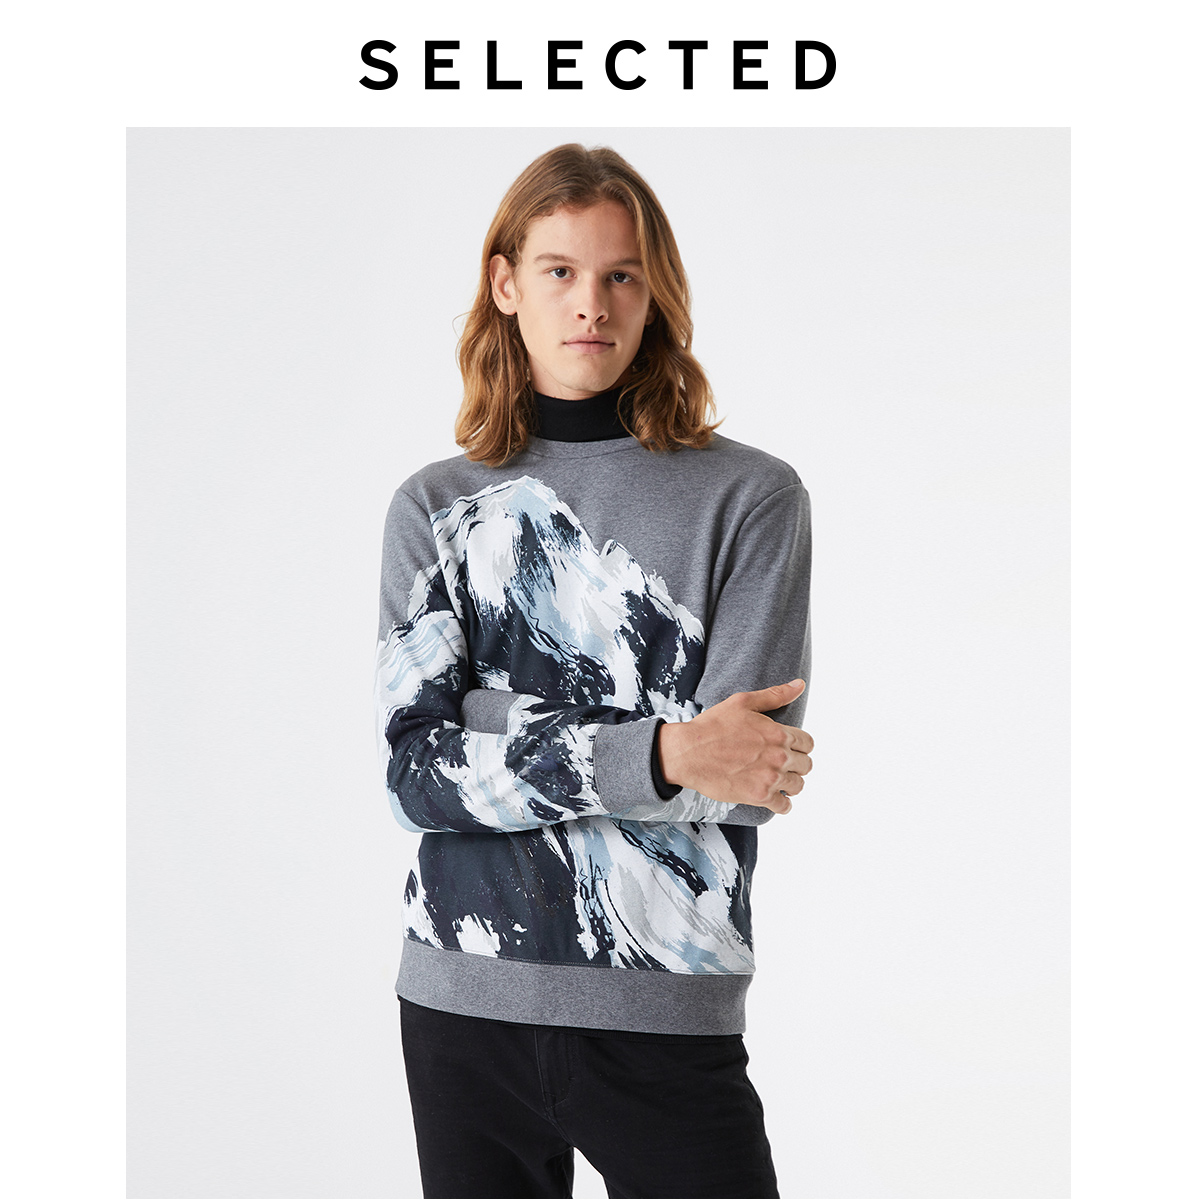 SELECTED Men's Autumn 100% Cotton Printed Long-sleeved Sweatshirt S|41934D516